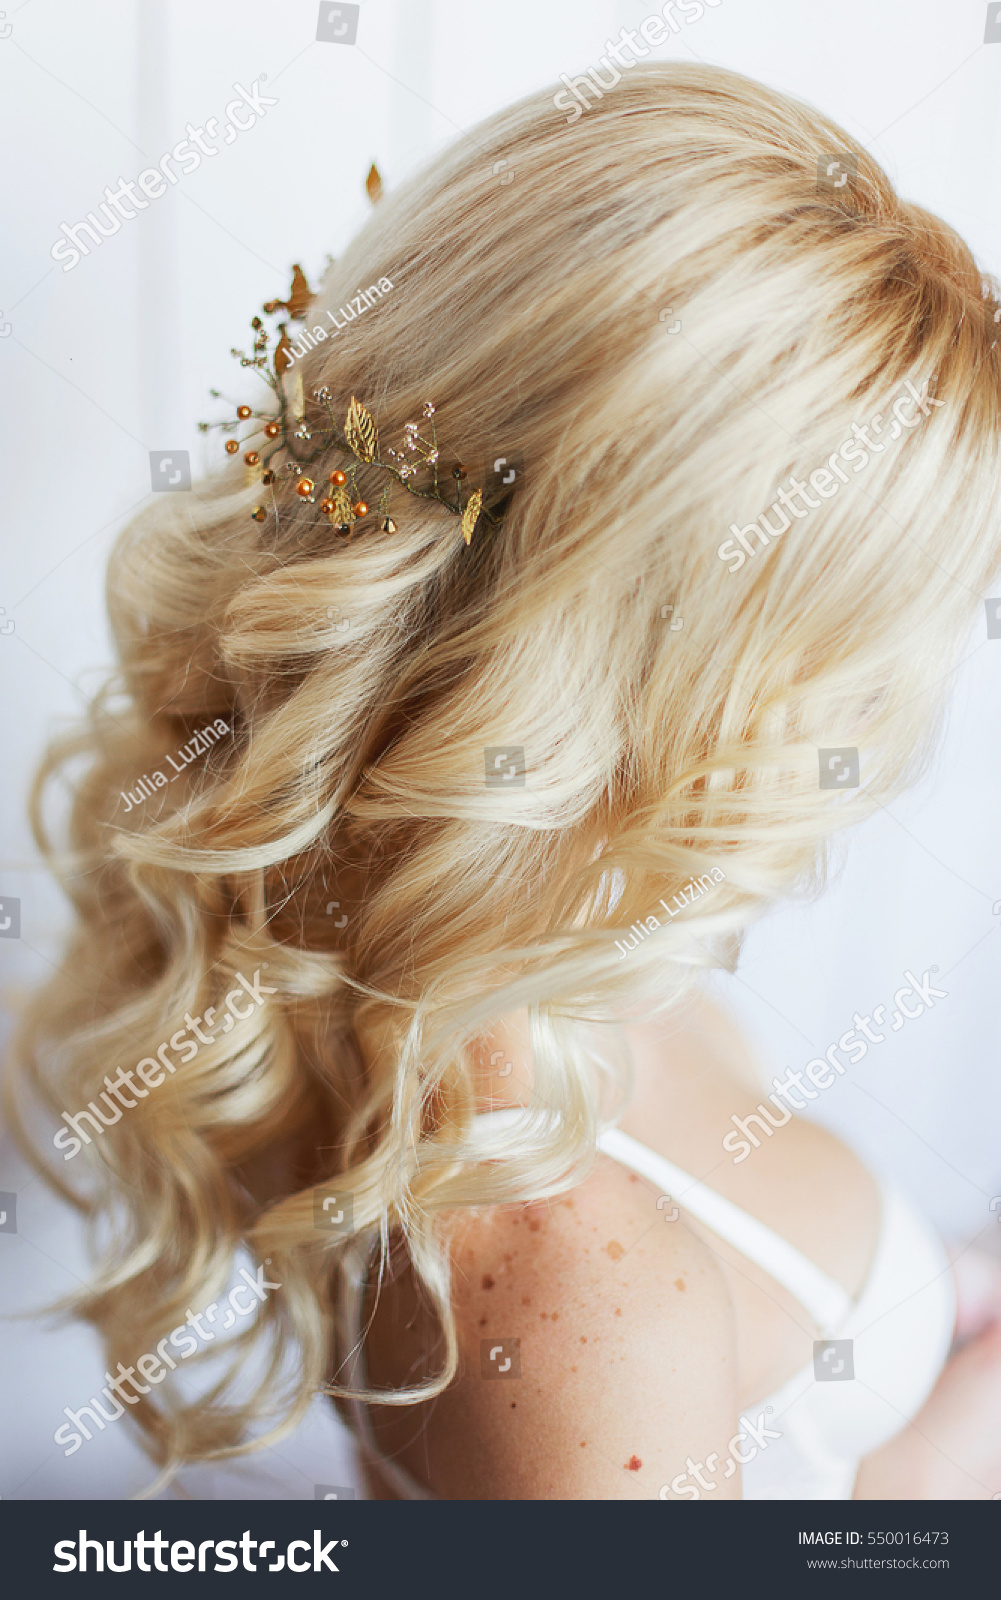 Tender Wedding Hairstyle Accessories Long Blond Beauty Fashion